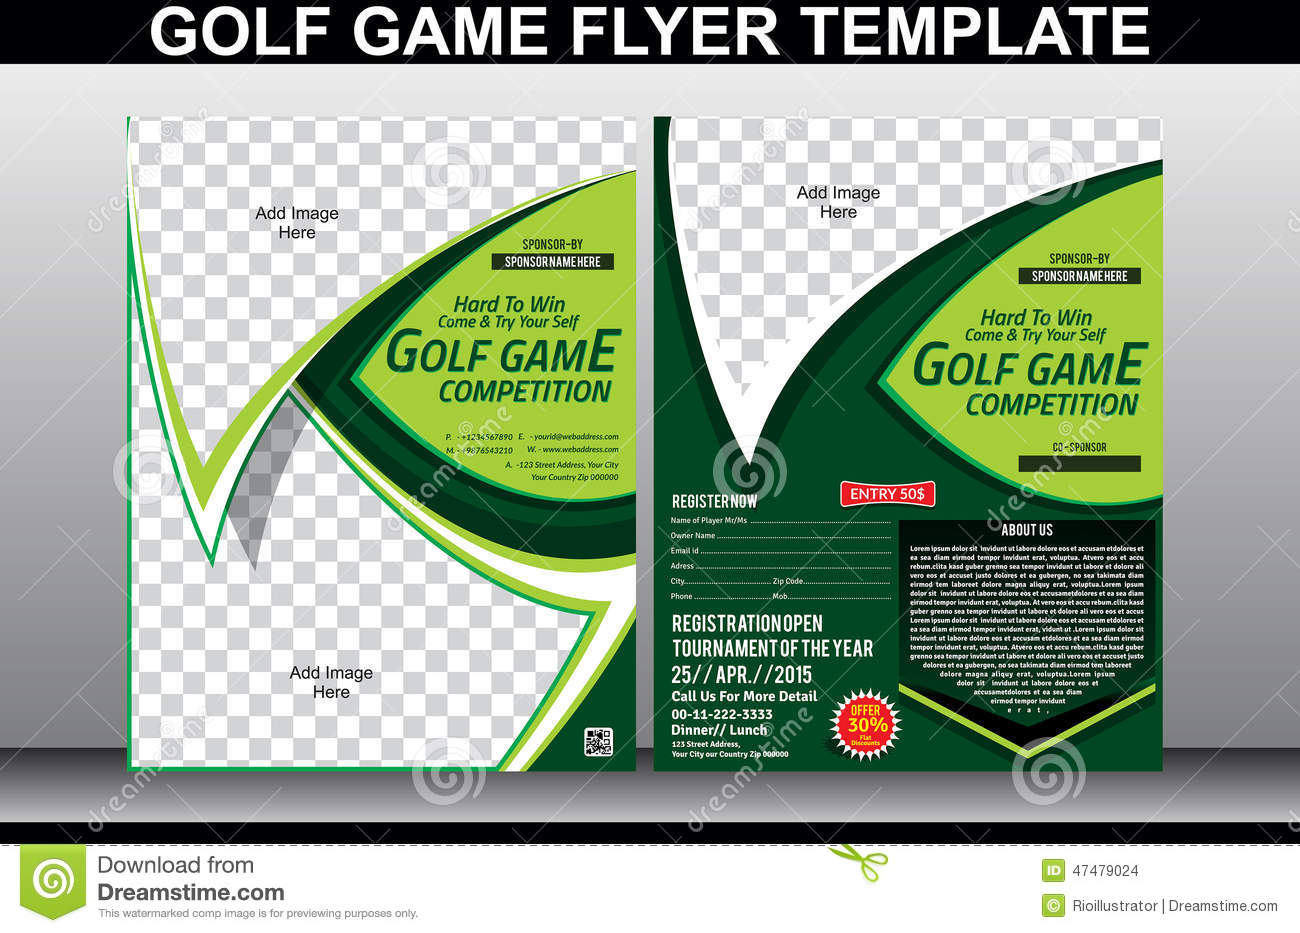 Golf Flyer Border Mersnoforum